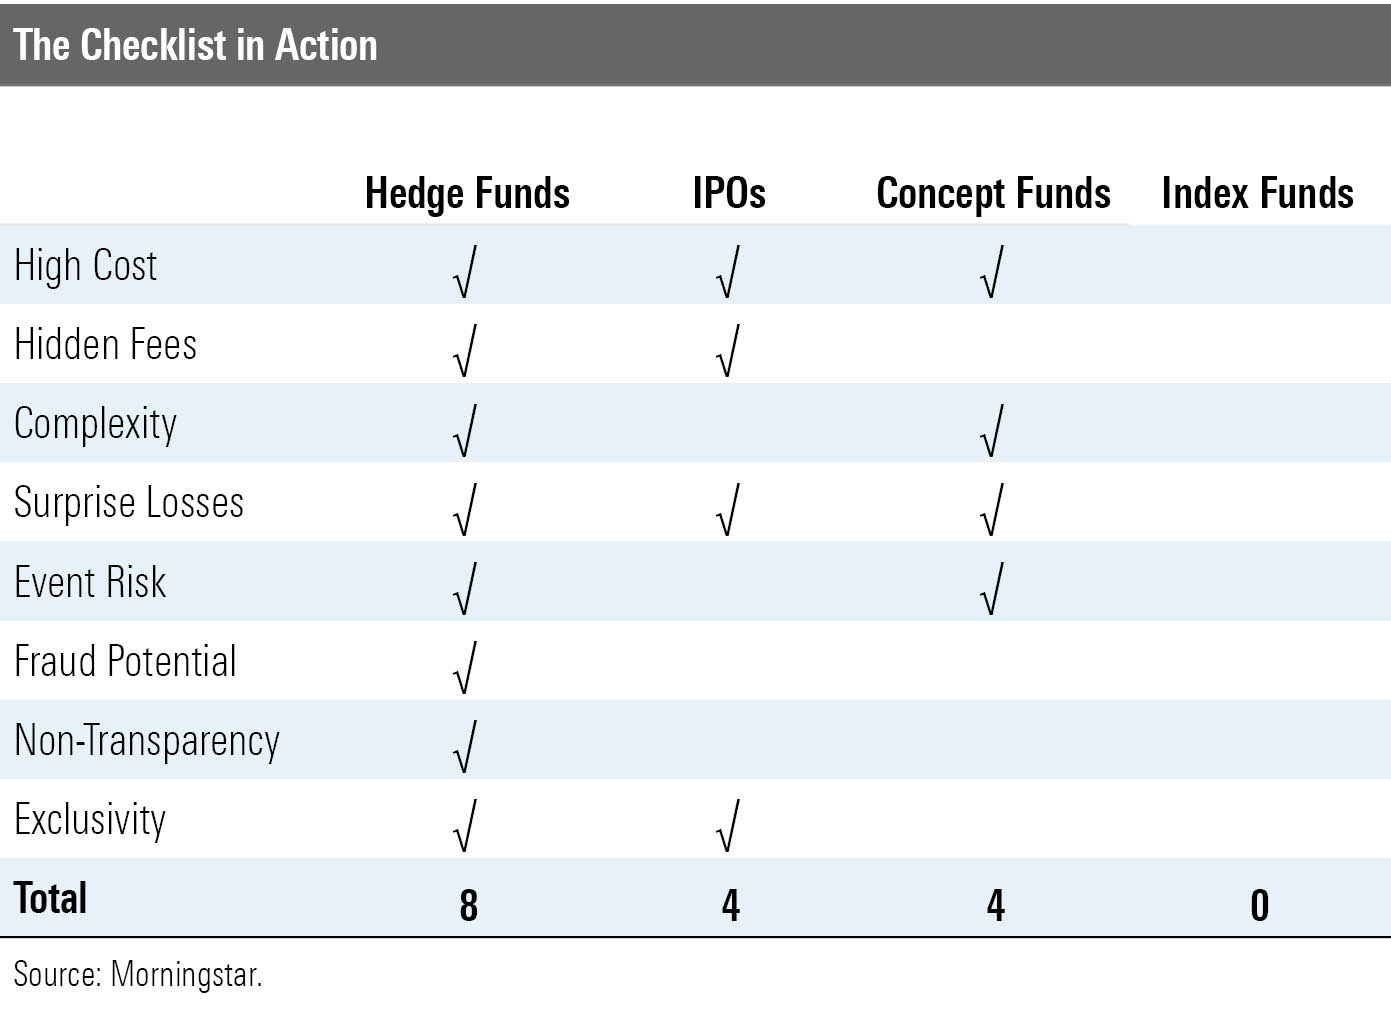 a table showing a checklist of investing criteria